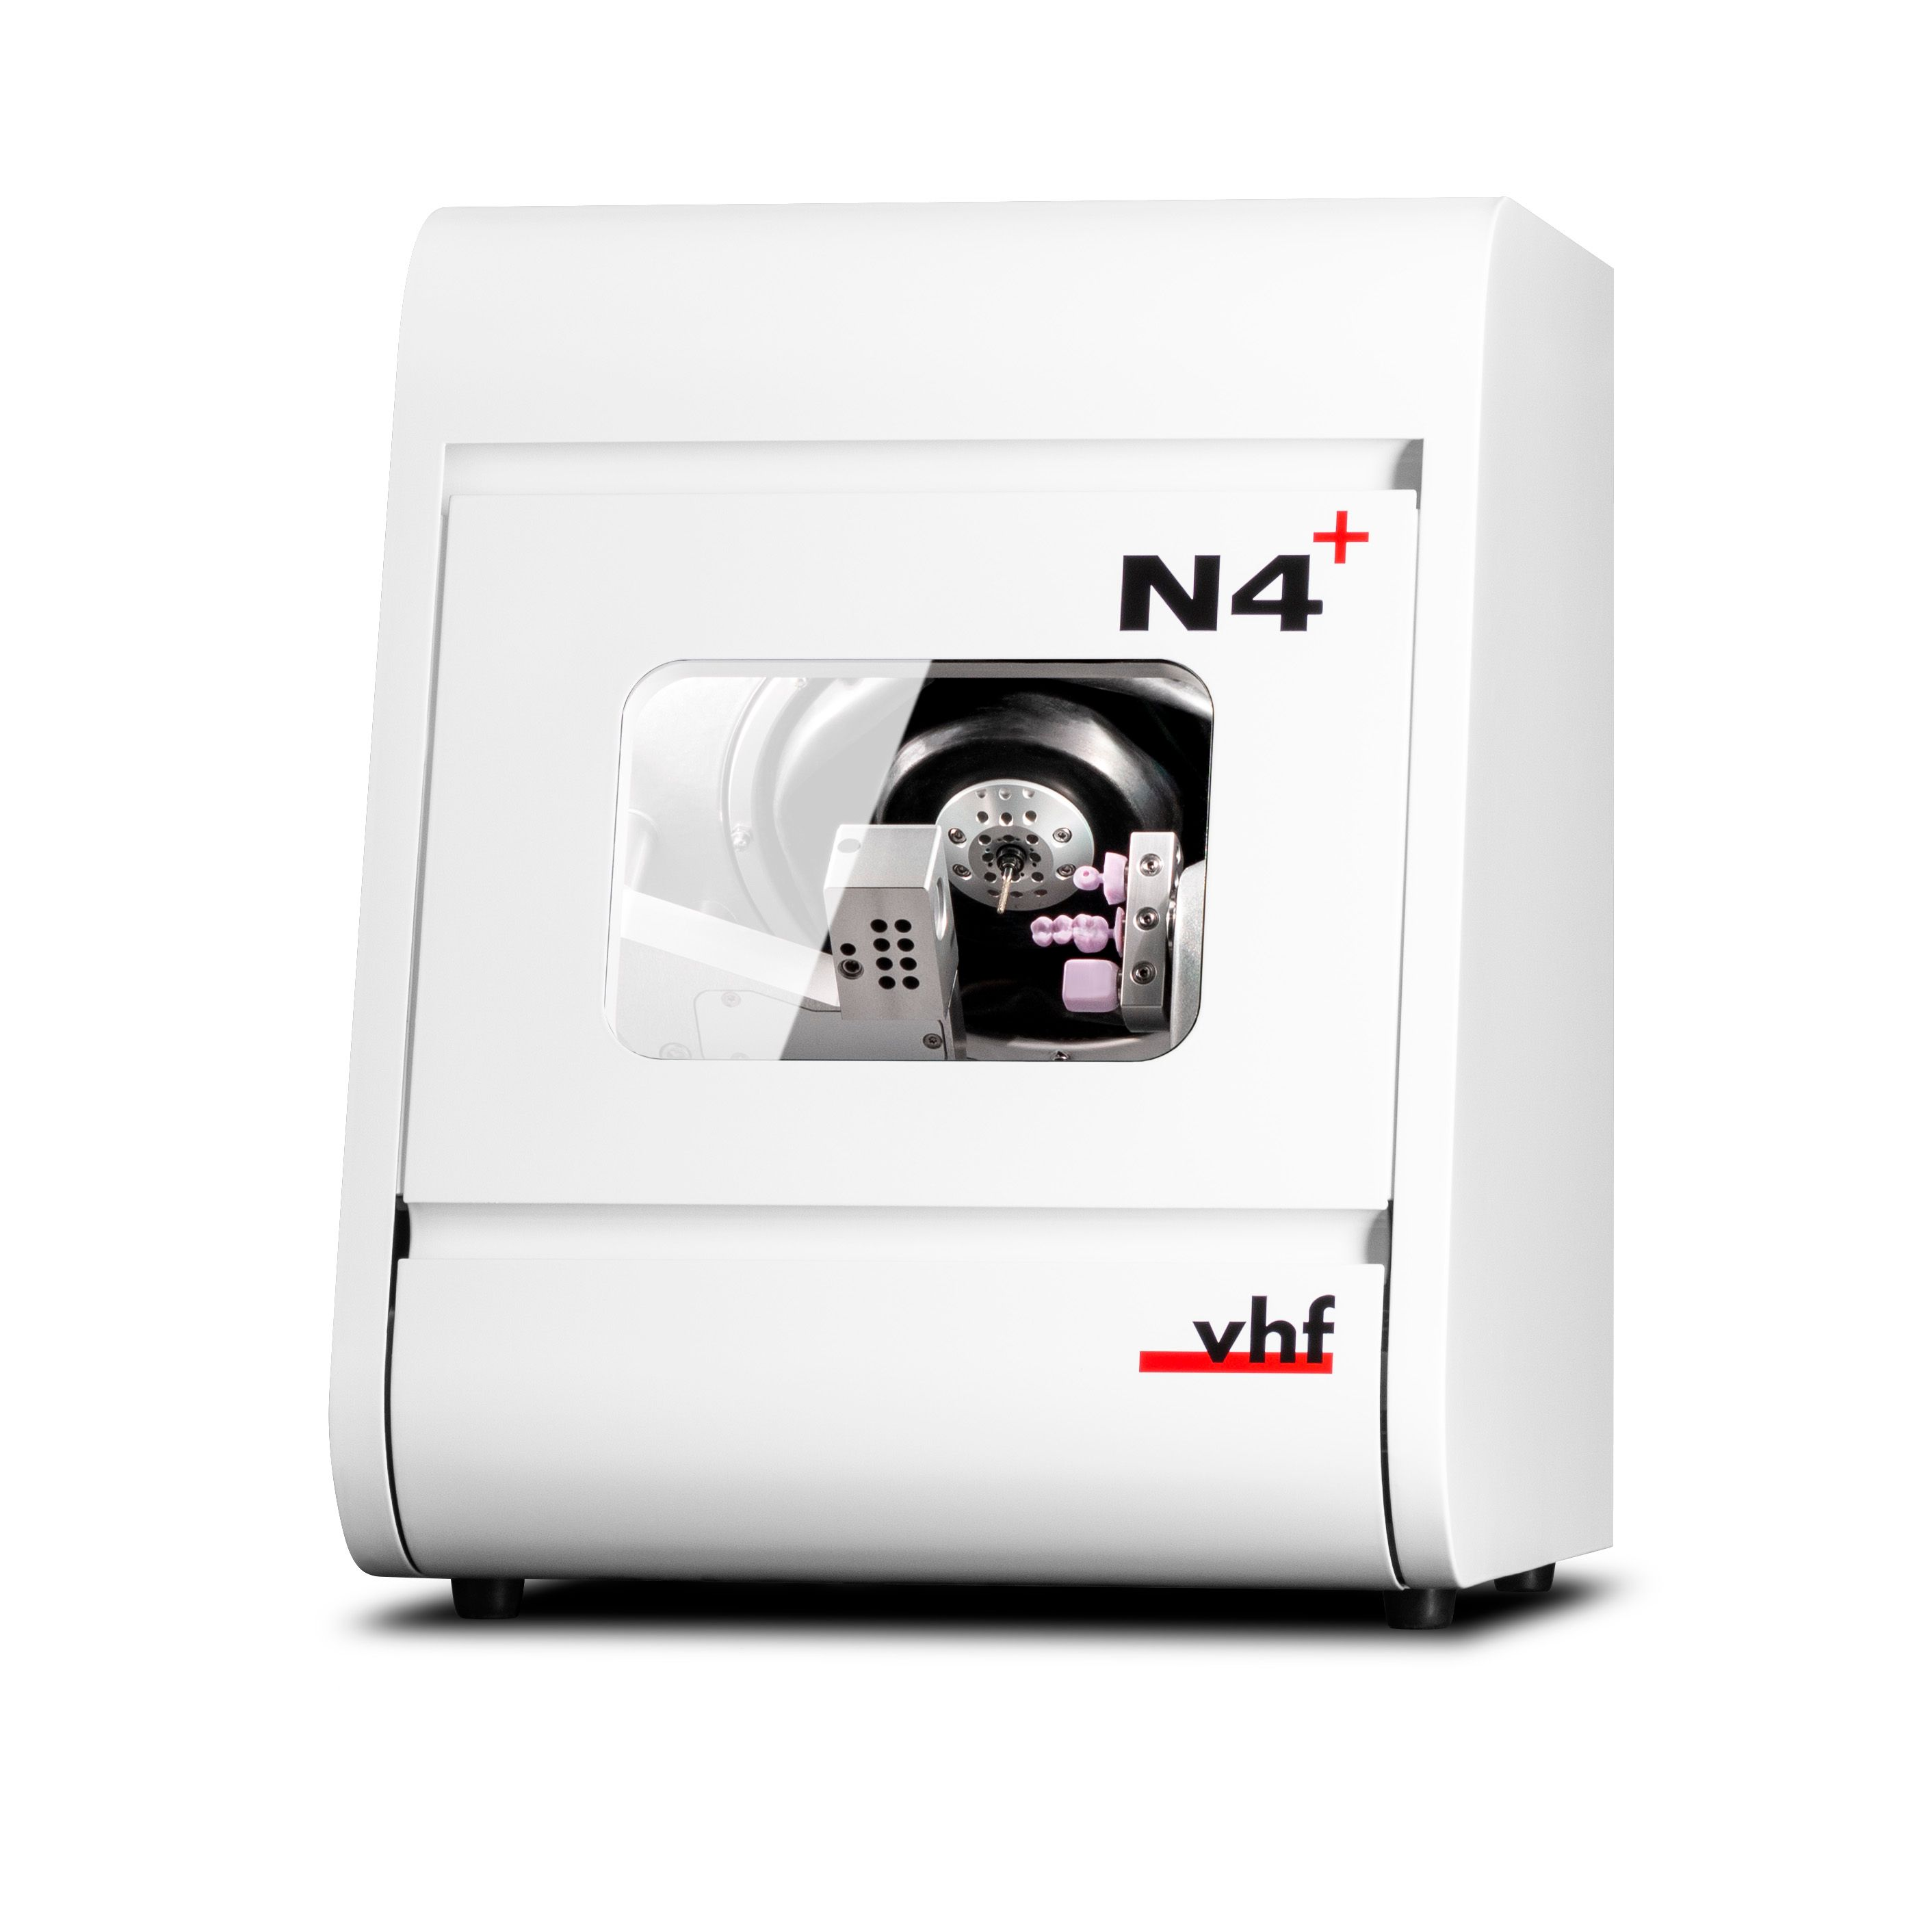 The N4+ is a wet processing machine for milling and grinding glass ceramic, composite and zirconia blocks as well as titanium abutments